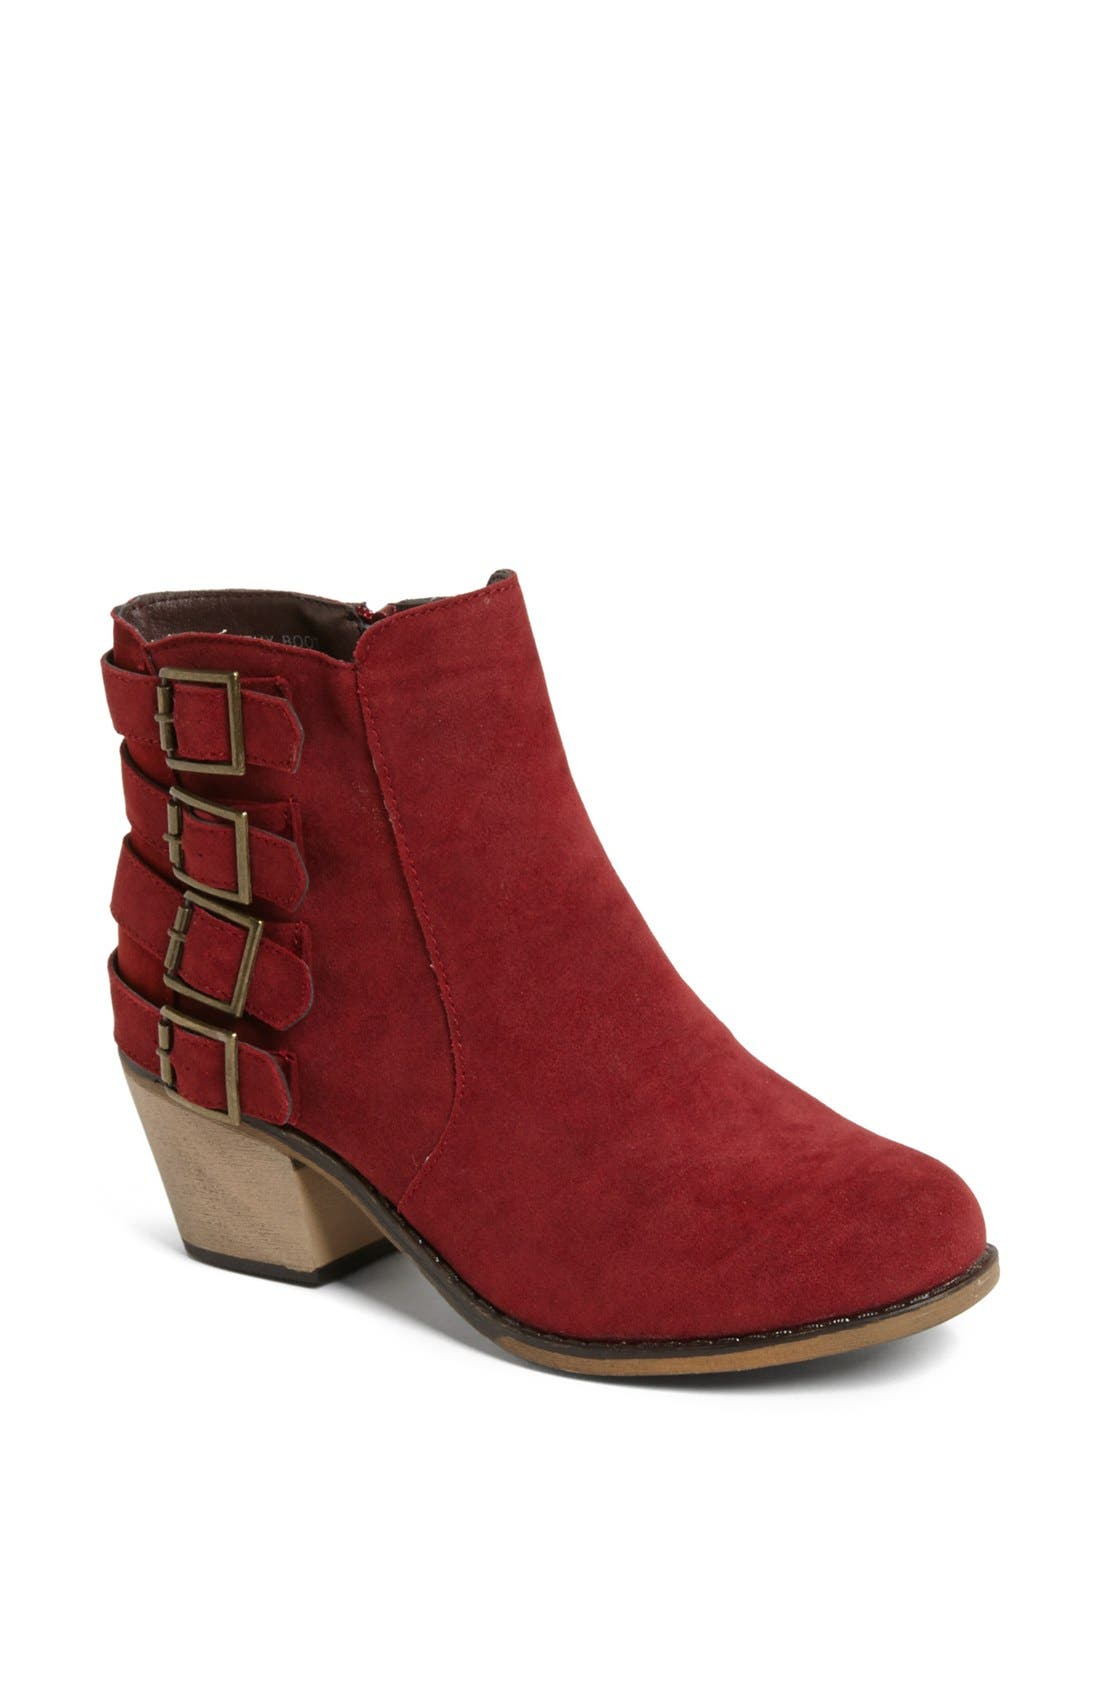 Alternate Image 1 Selected - Electric Karma 'Cathy' Boot